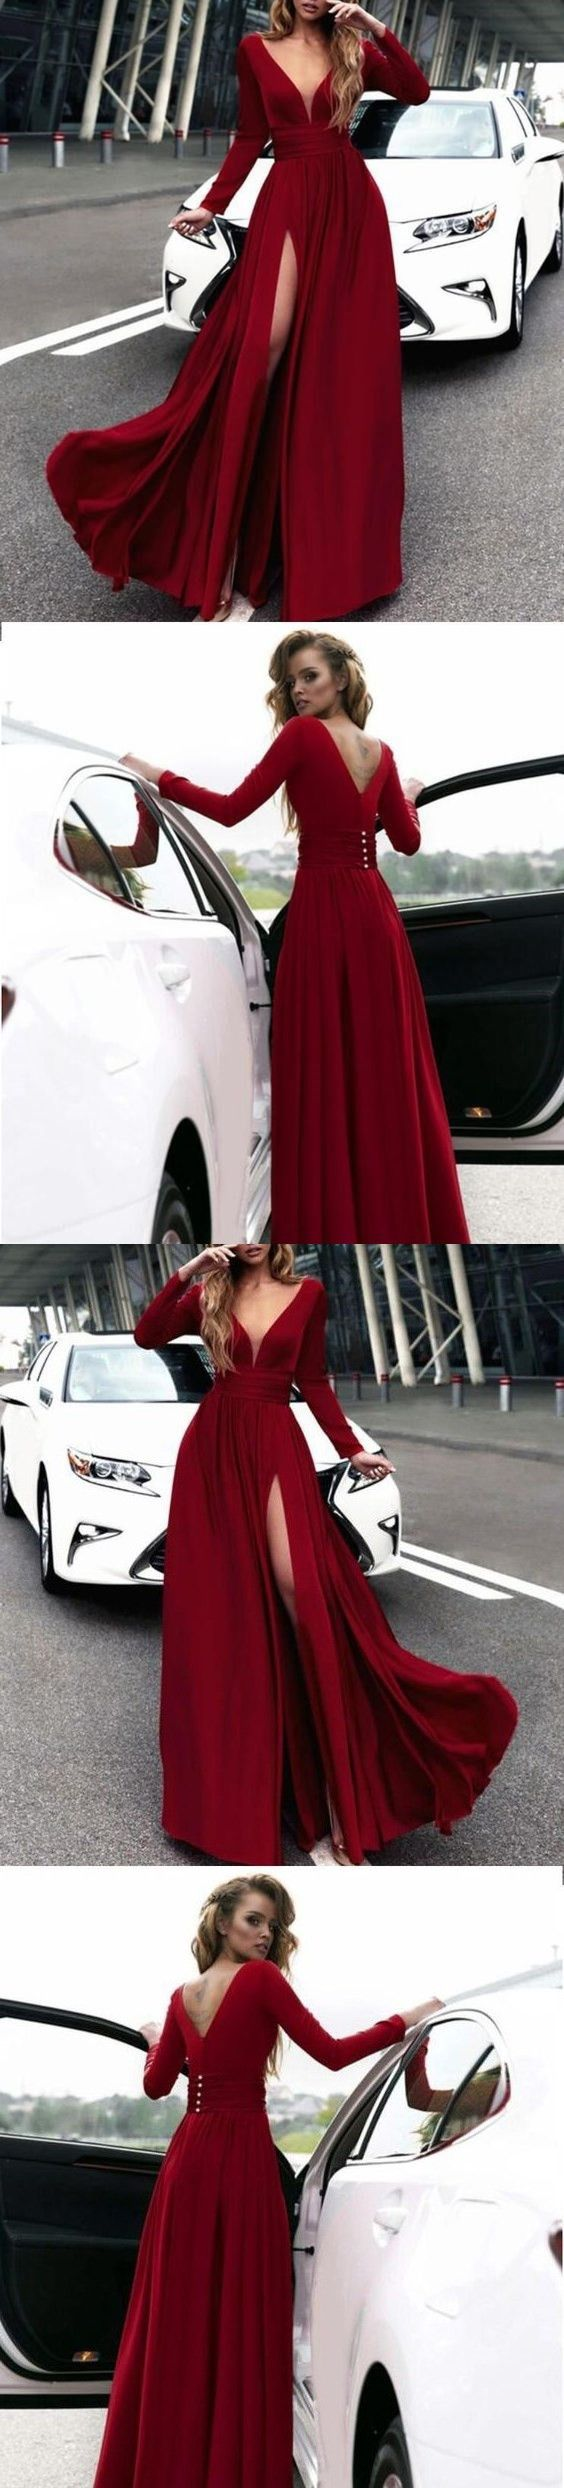 Long Sleeves Formal Evening Gown Wine Red,V Neck Prom Dress With High Slit G225#prom #promdress #promdresses #longpromdress #promgowns #promgown #2018style #newfashion #newstyles #2019newprom #eveninggown #wineredpromdress #longsleeve #vneckline #vback #highslit